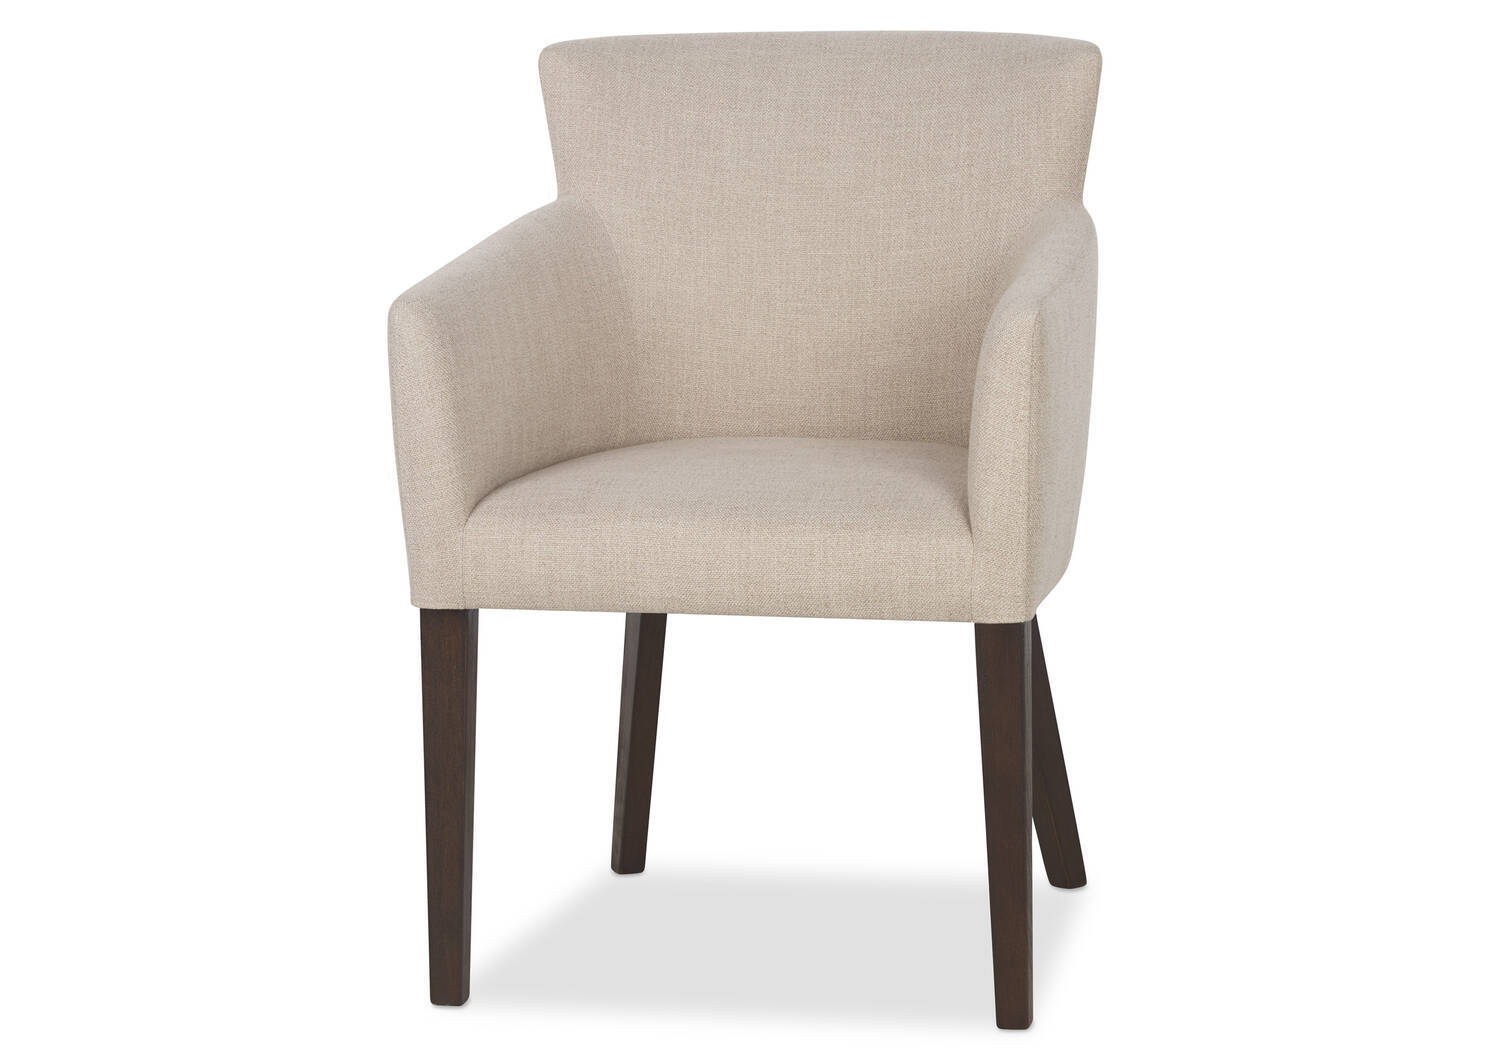 Jenaya Arm Dining Chair -Daylin Flax